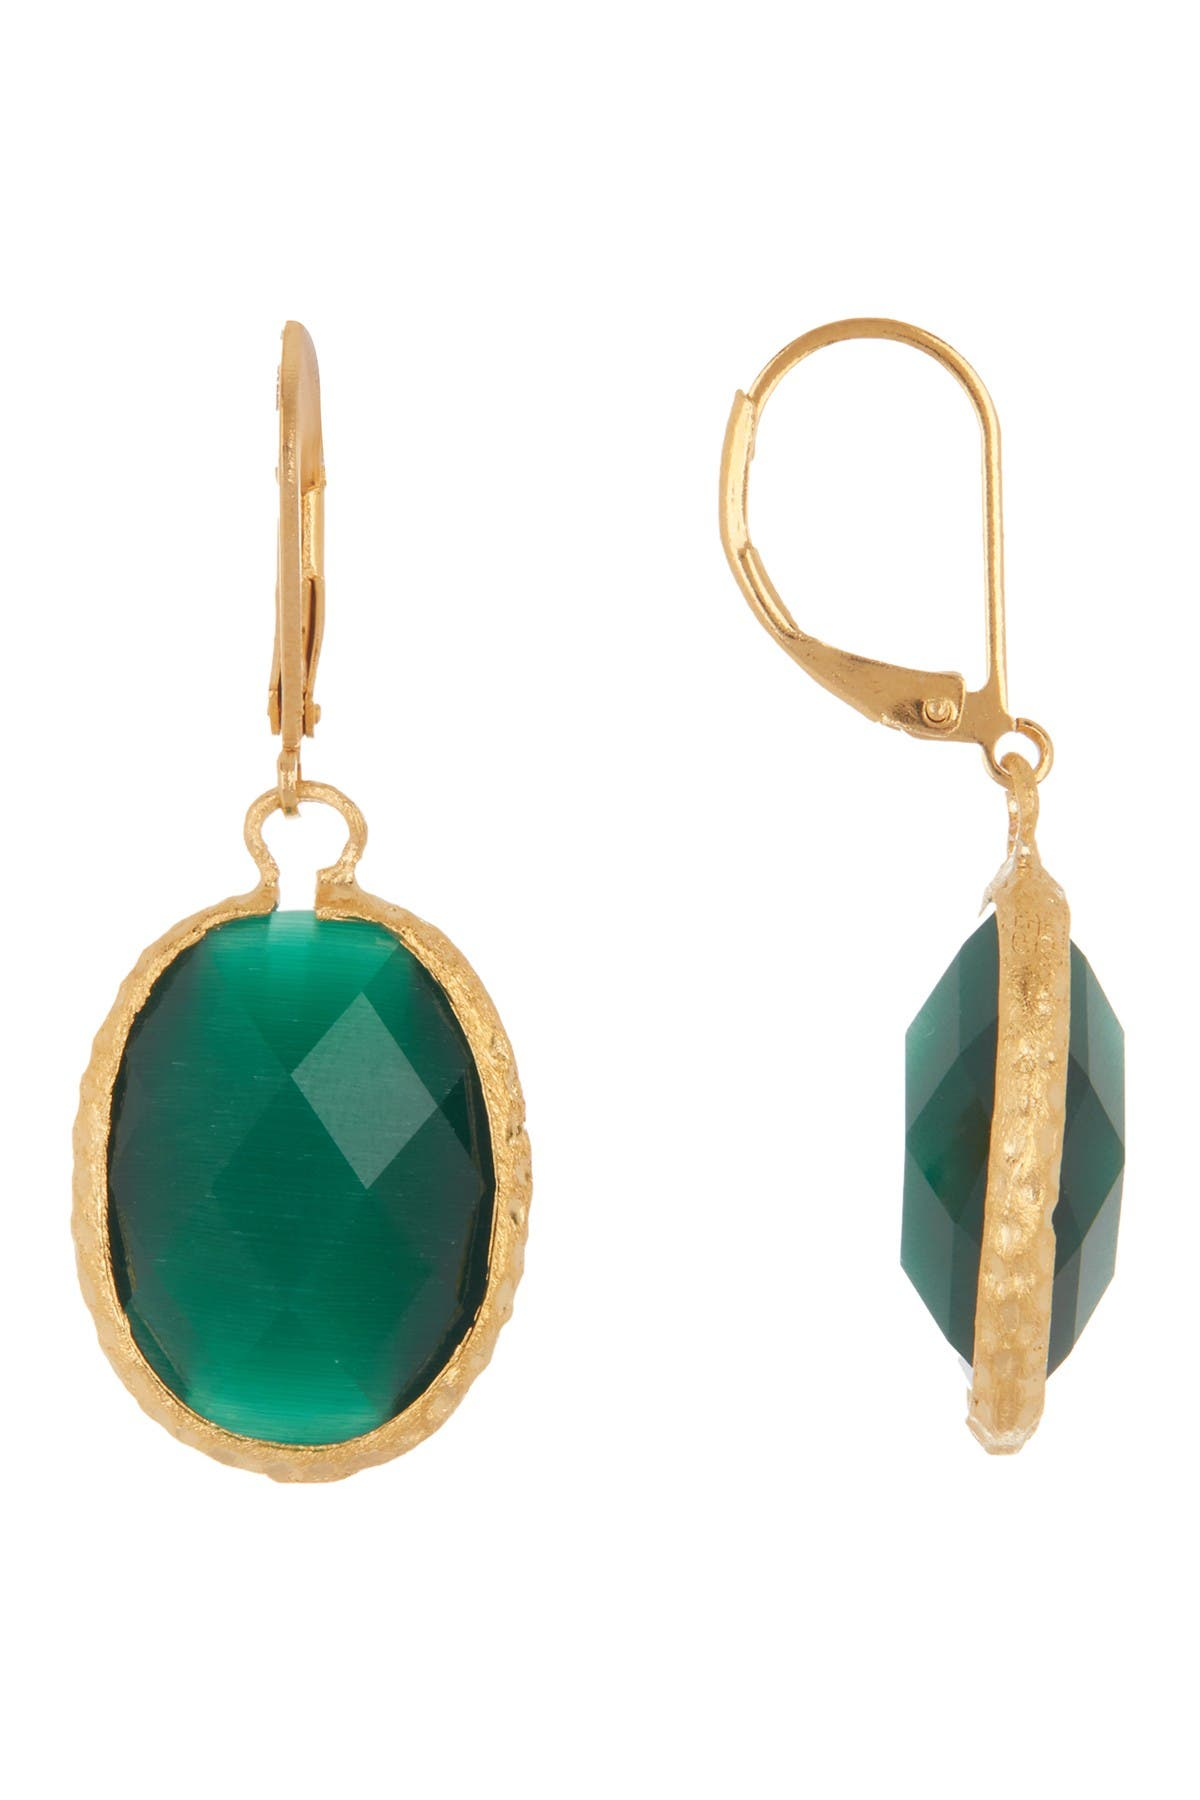 Image of Rivka Friedman 18K Gold Clad Faceted Dark Green Cat's Eye Crystal Satin Oval Hammered Earrings